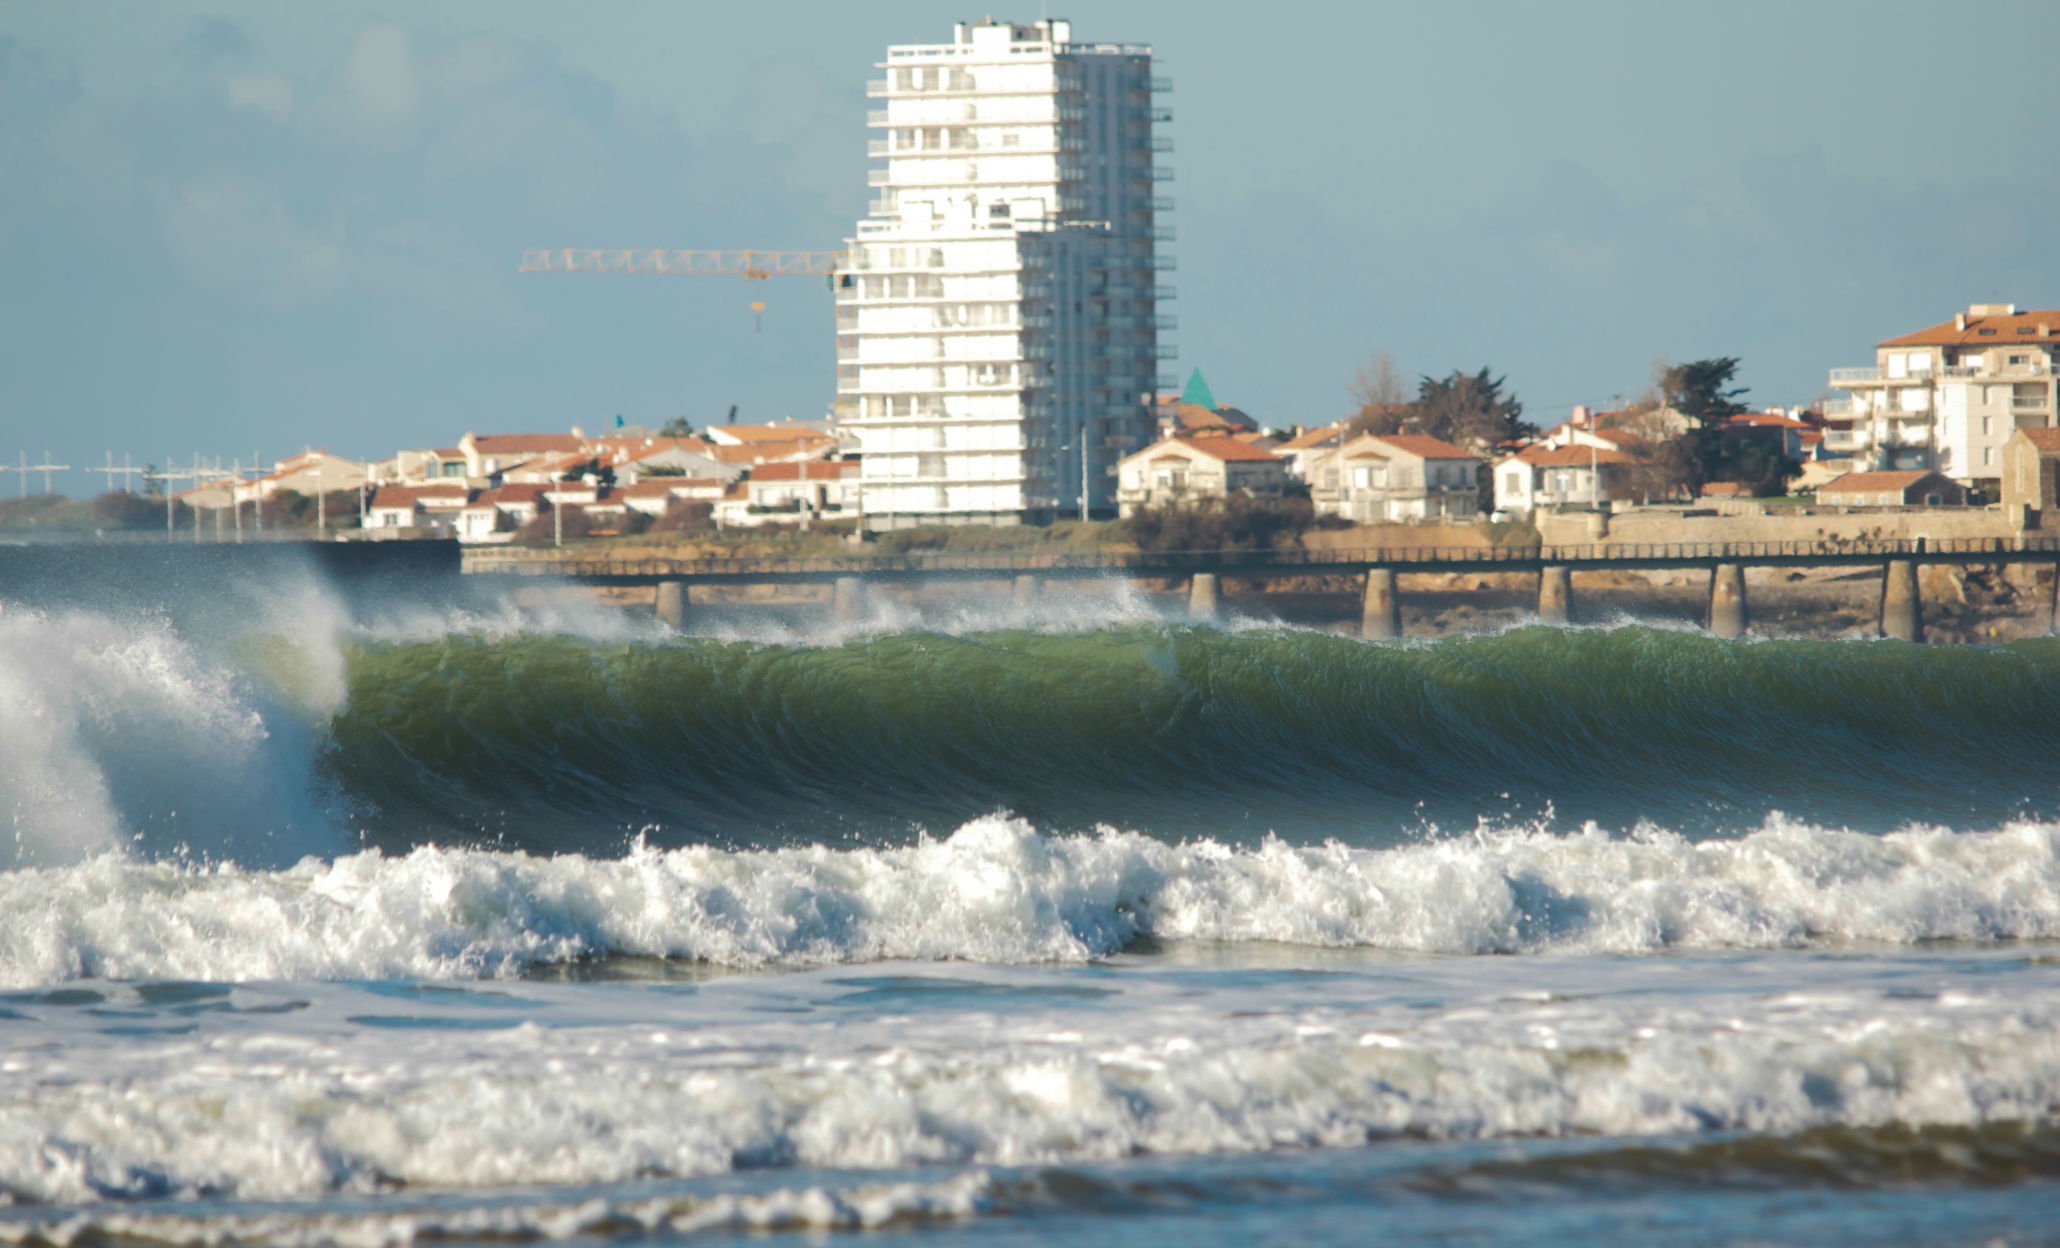 Surfing in the bay of Les Sables d'Olonnes